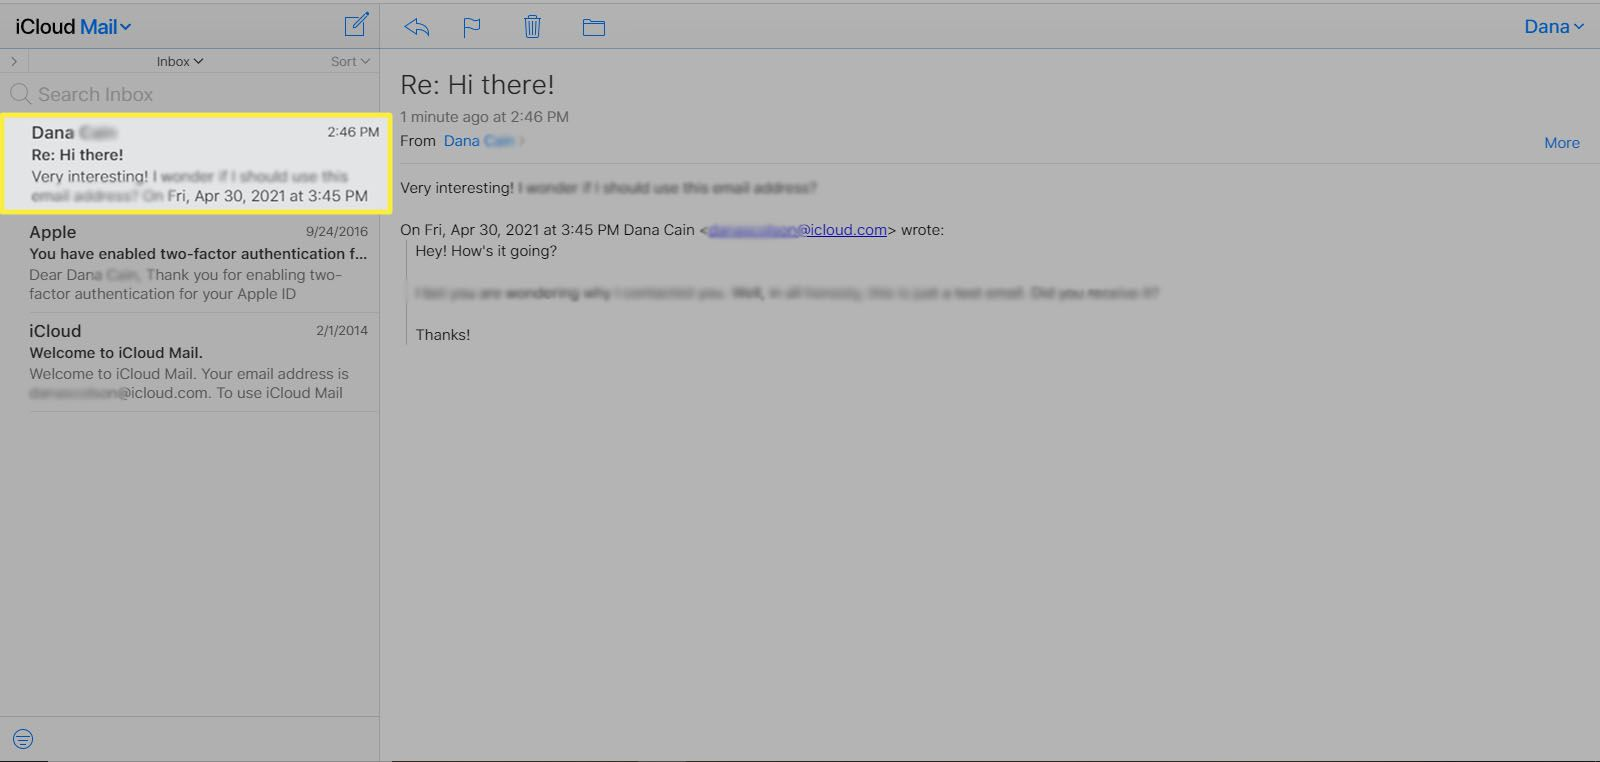 Selecting an email in iCloud Mail